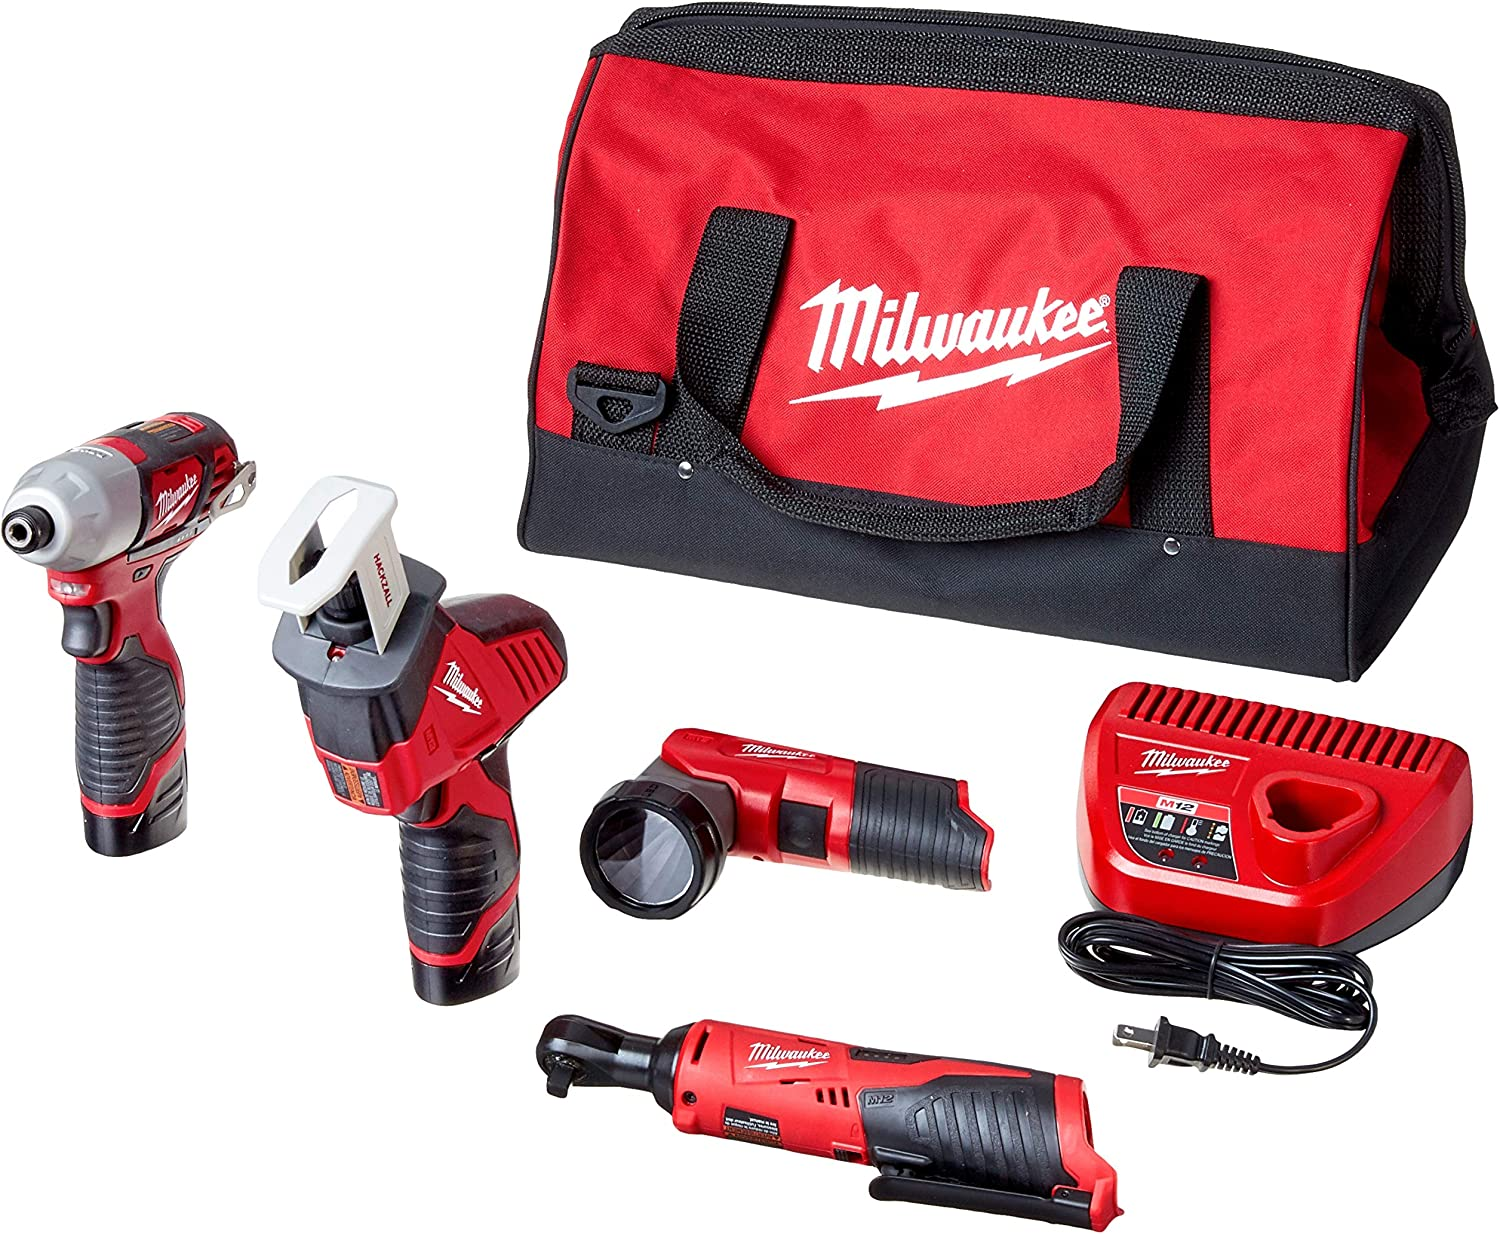 MILWAUKEE M12 Cordless Combo 3-Tool Kit 12-V Lithium-Ion Drill Impact Driver Set